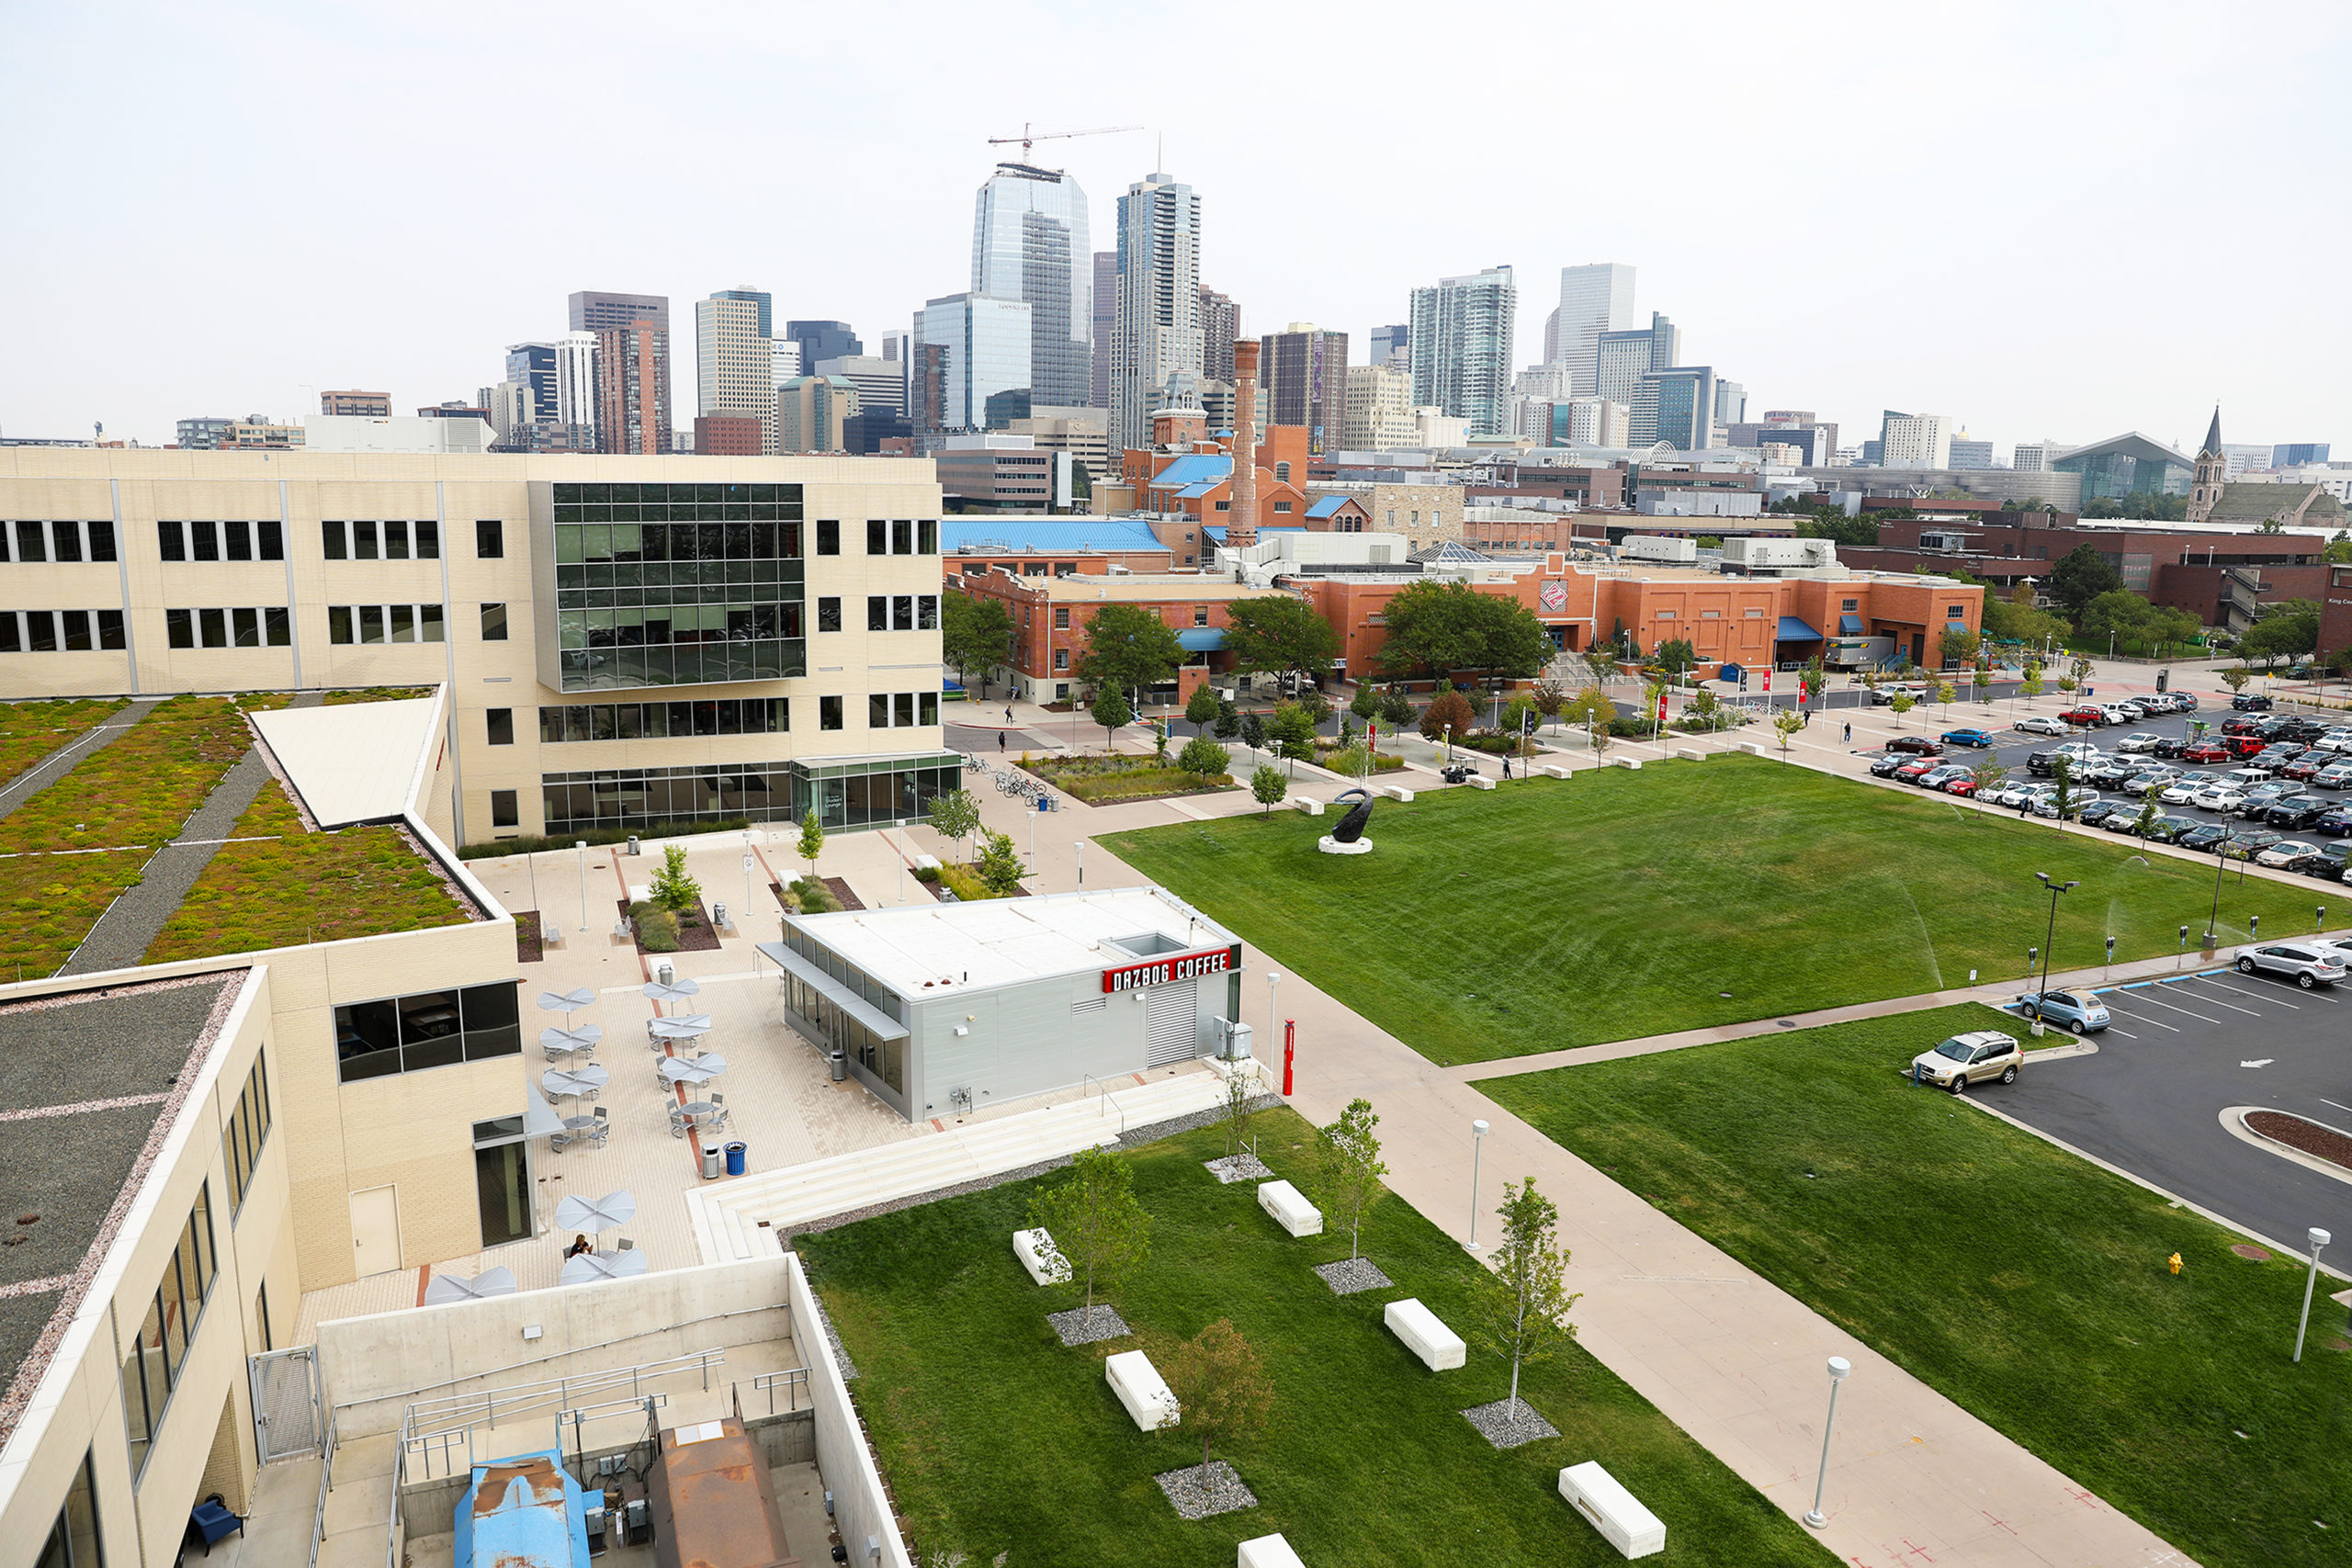 Campus from AES_Downtown view_2222_170908 12×8 cc